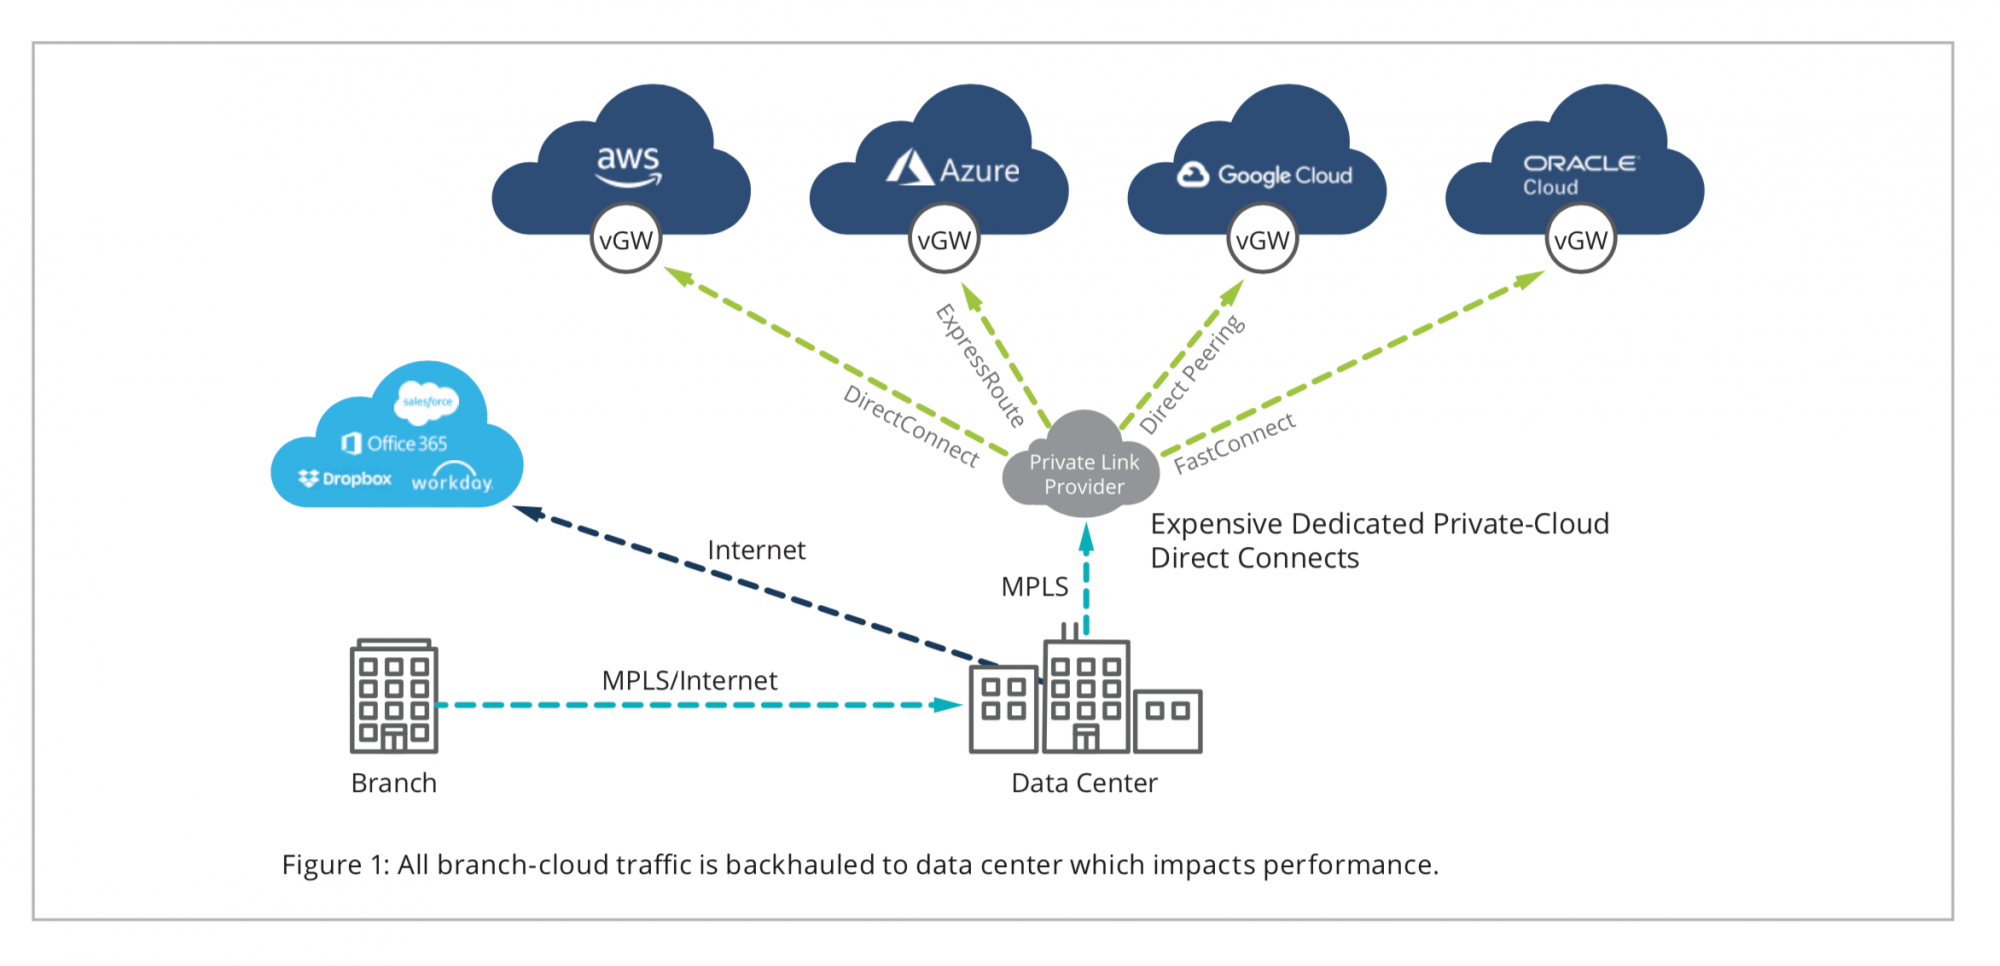 Figure 1: All branch-cloud traffic is backhauled to data center which impacts performance.